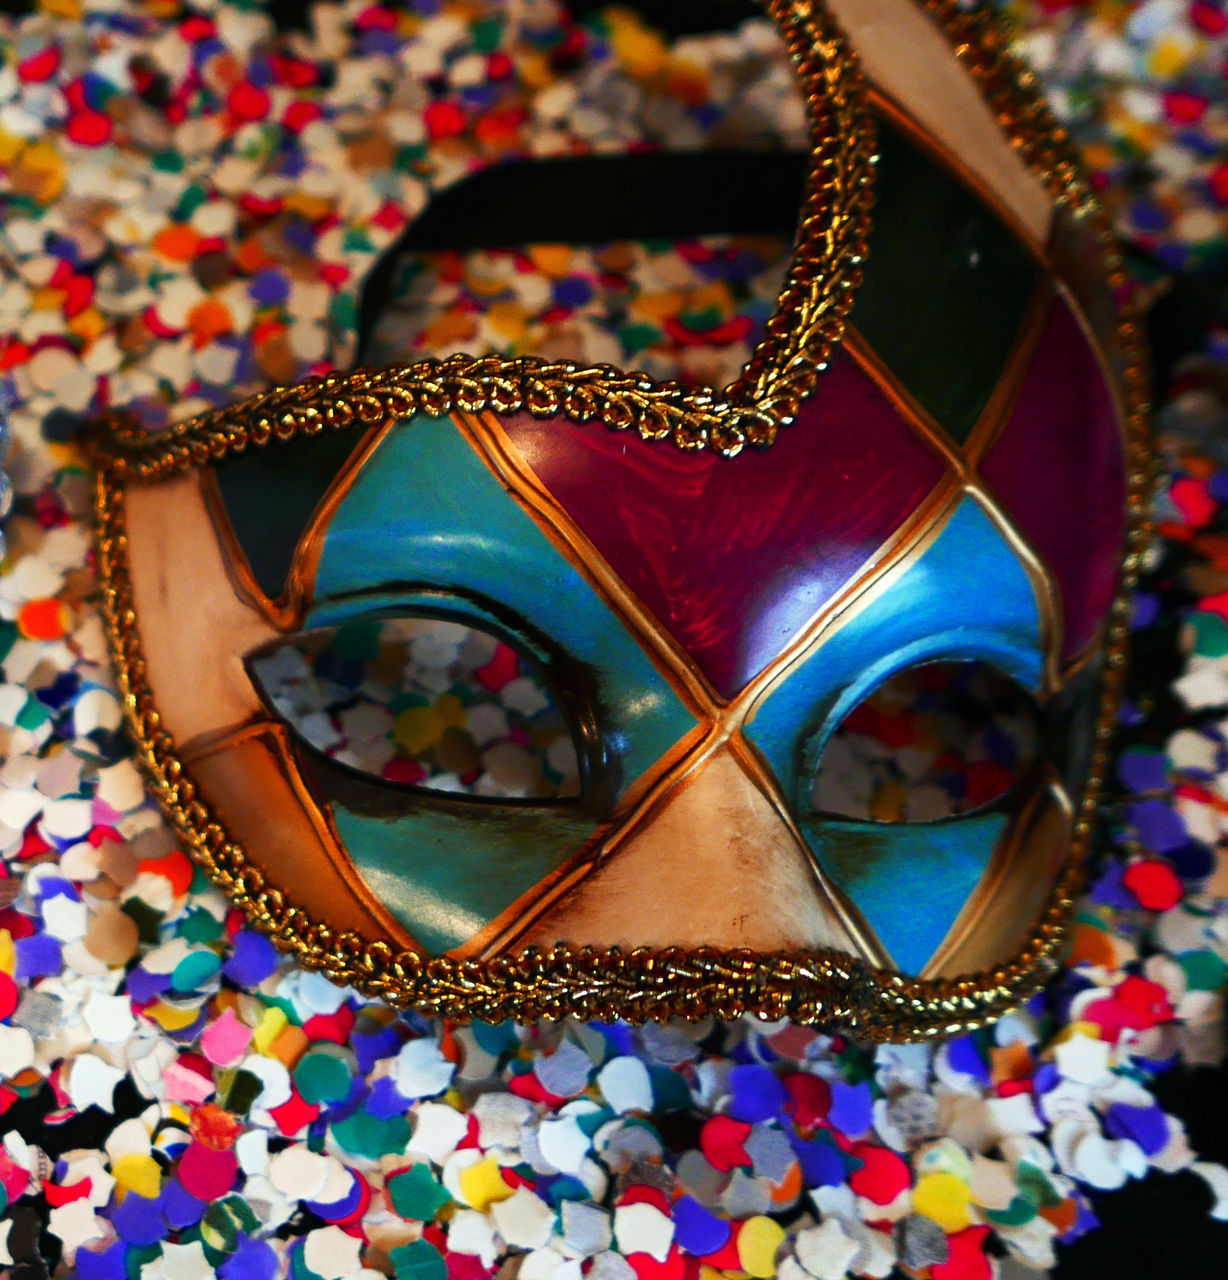 High Angle View Of Venetian Mask On Confetti At Table